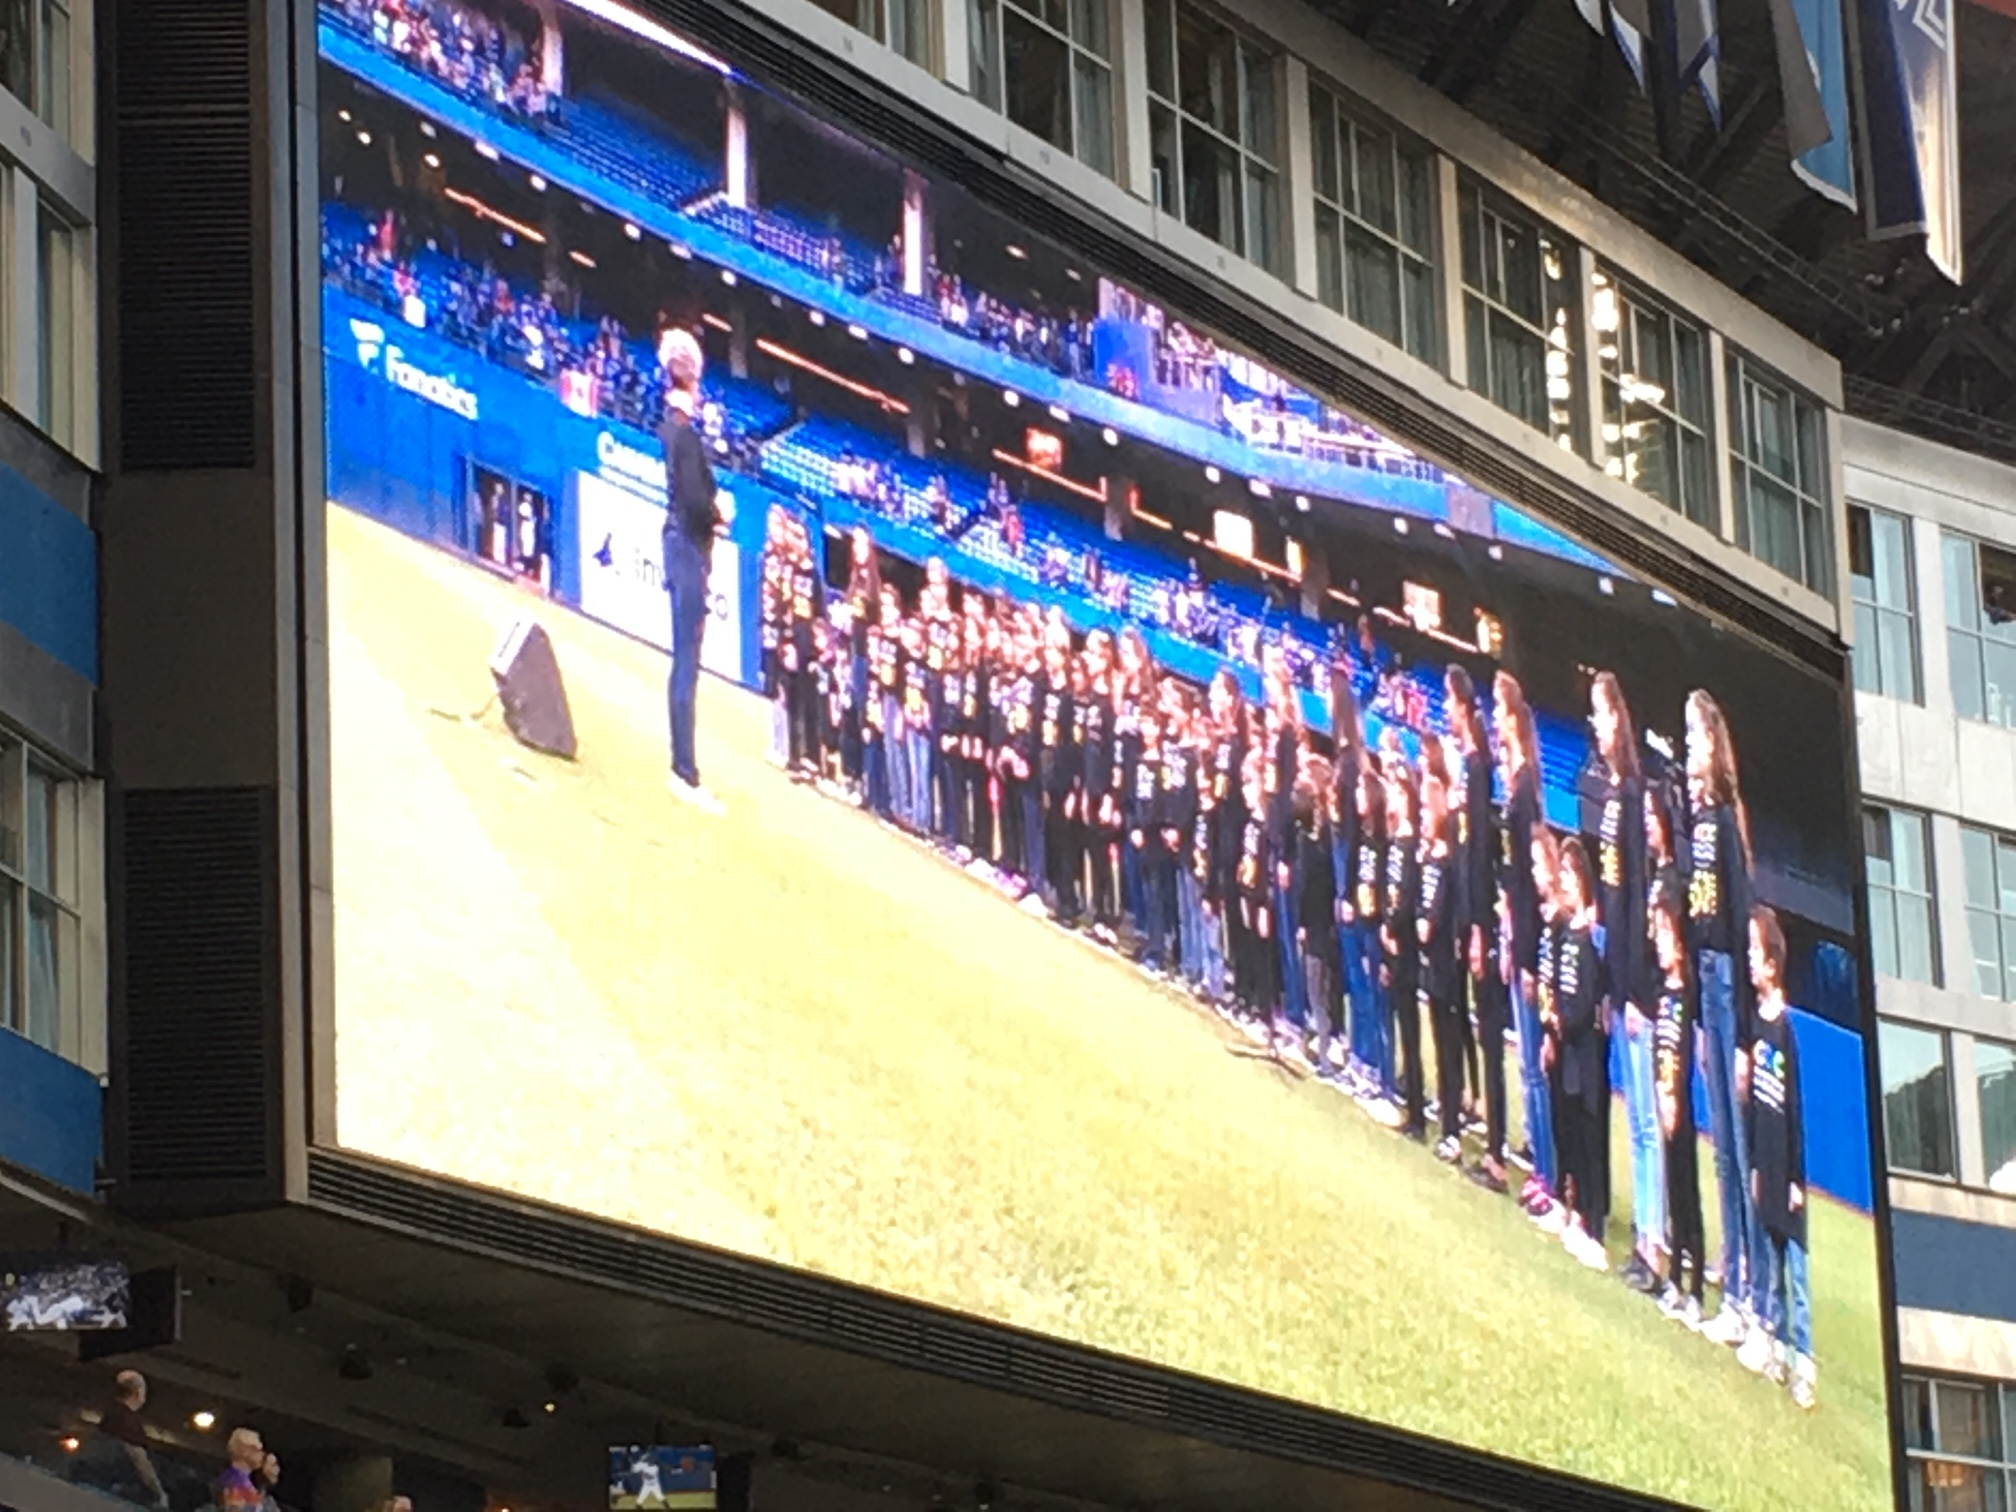 Choristers on large screen in Rogers Centre